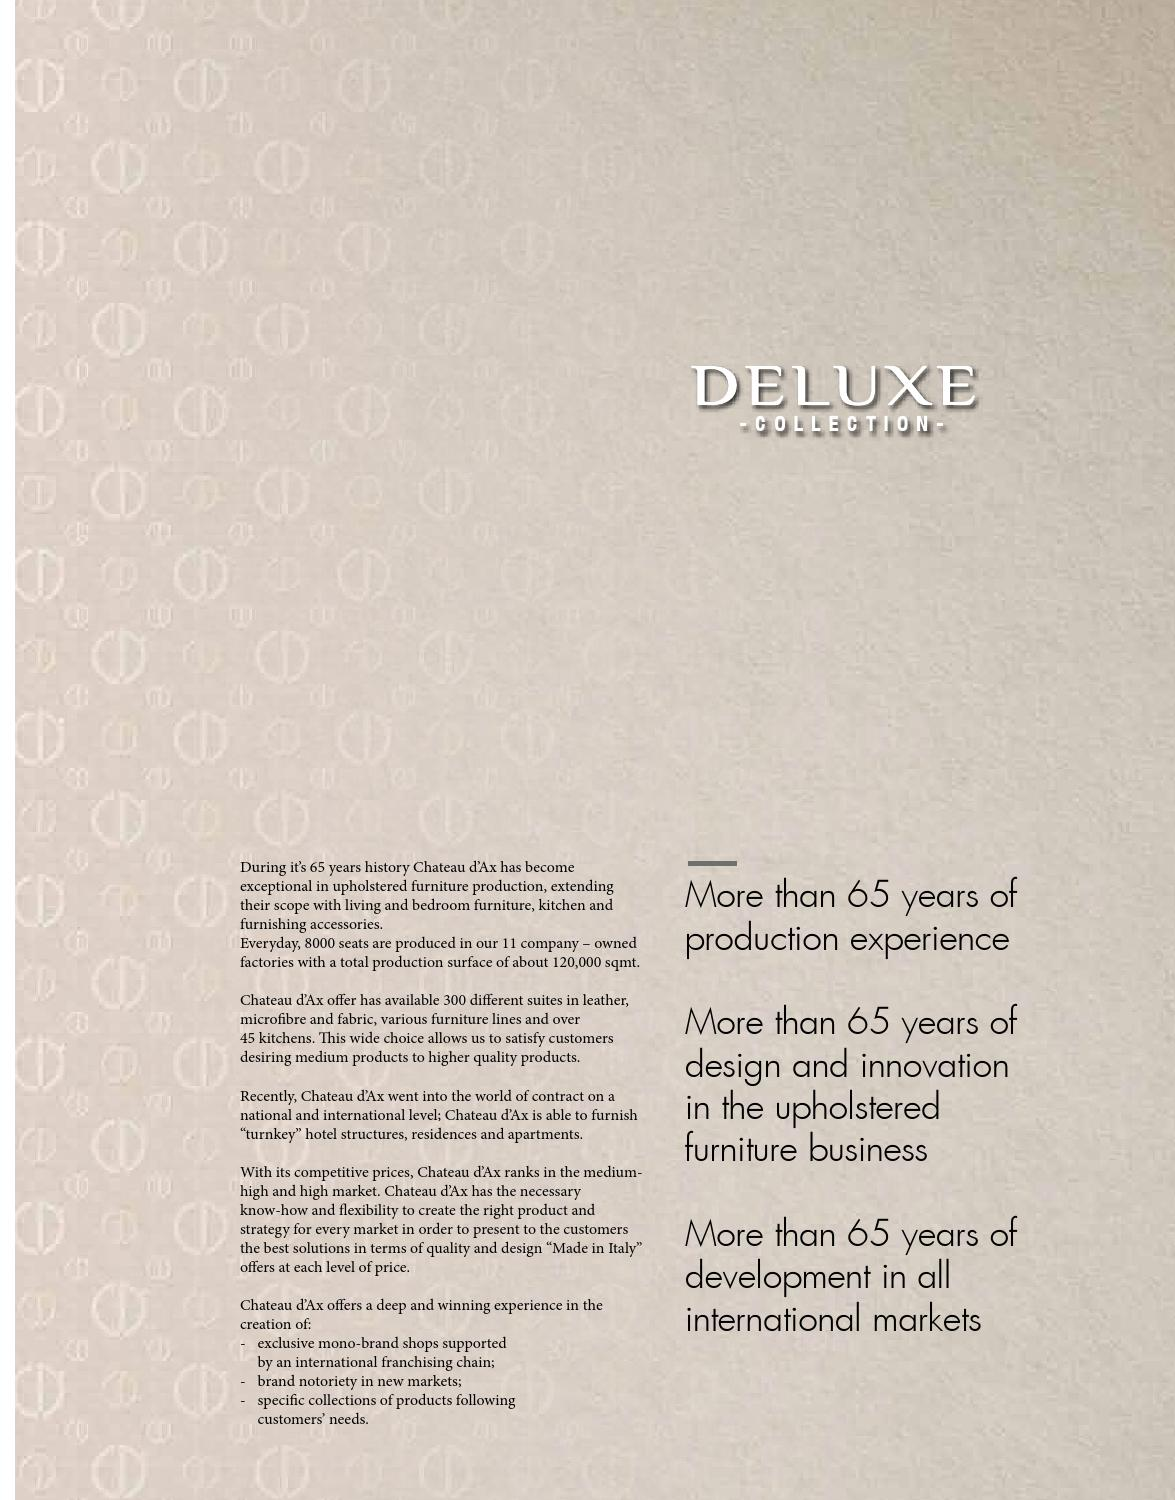 Seats And Sofas Genk Chateau D Ax Catalogo Deluxe Sofas 2014 By Decointeriors Issuu